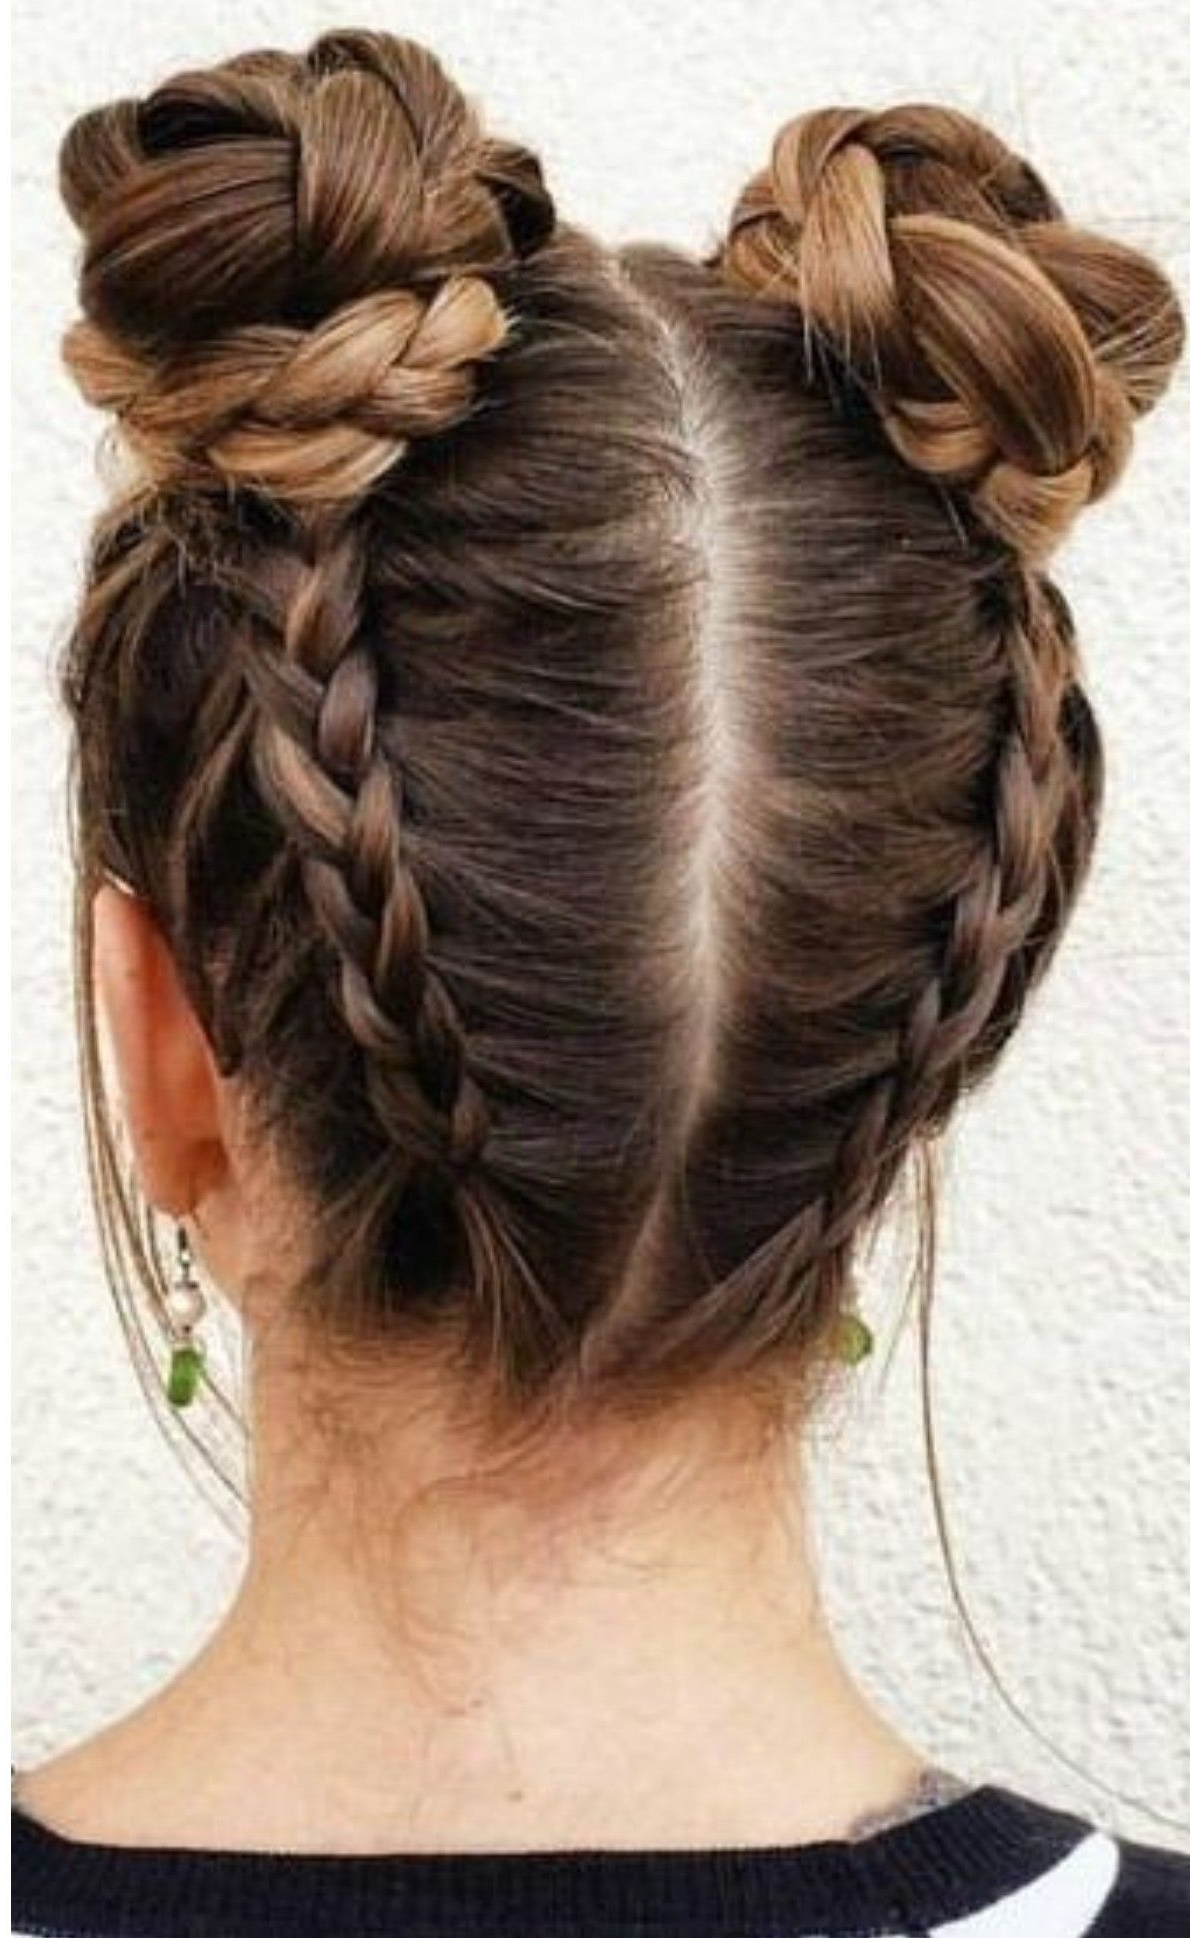 Well Known Braided Space Buns Updo Hairstyles Pertaining To 2 Braided Space Buns! Easy And Awesome! (View 17 of 20)